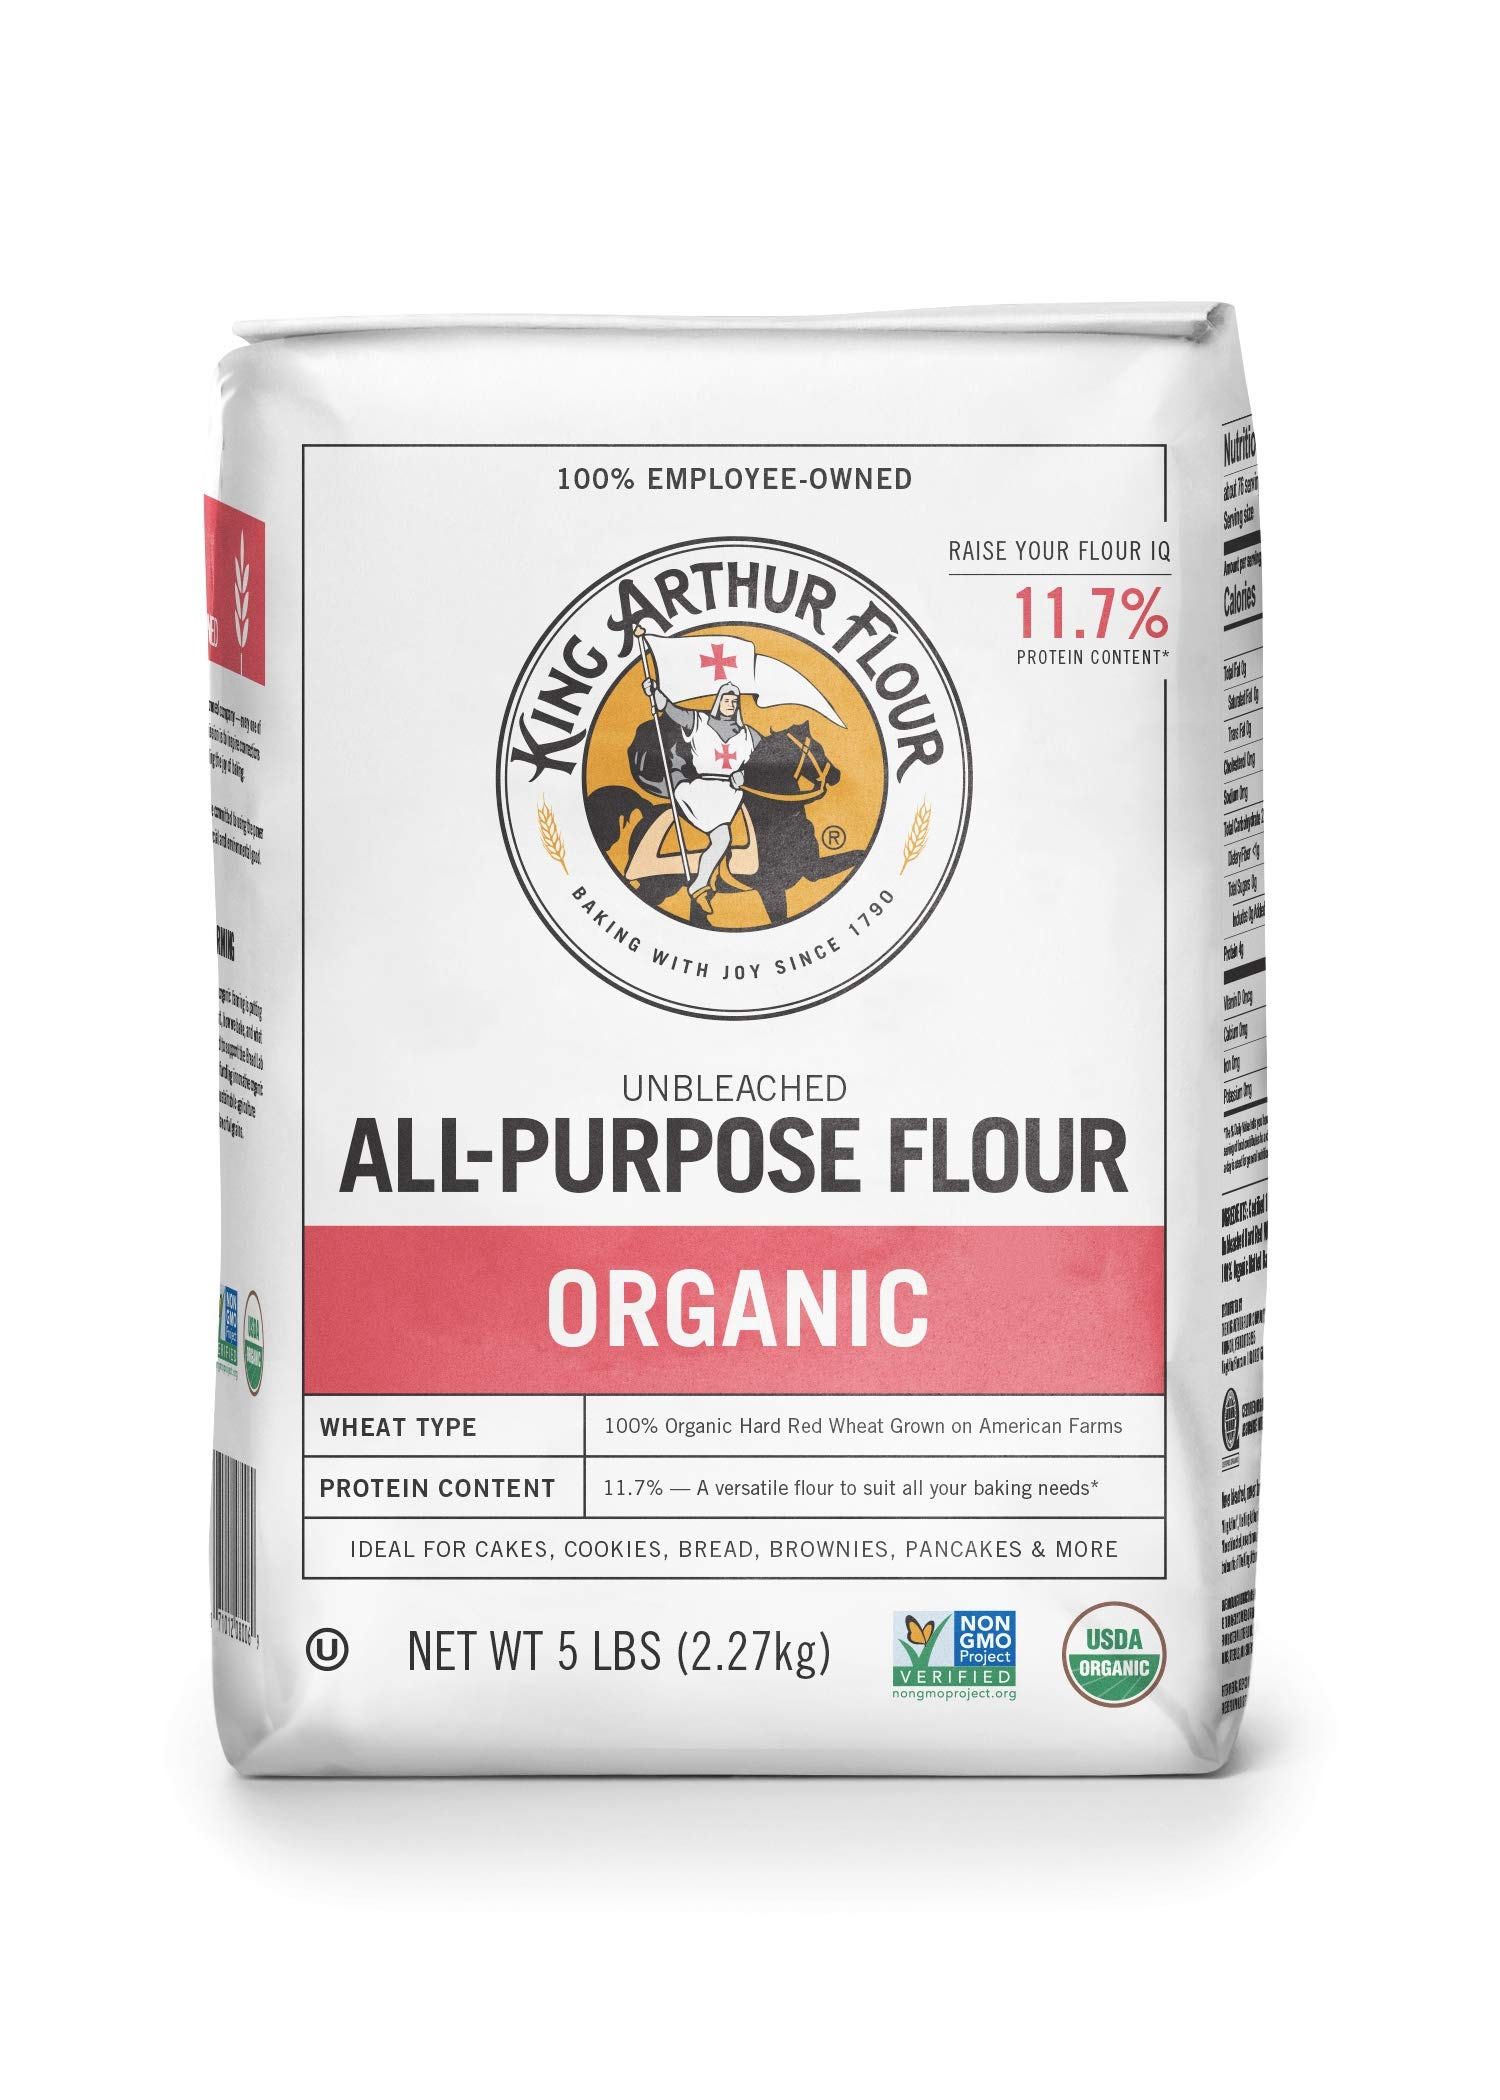 King Arthur Flour 100% Organic Unbleached All-Purpose Flour, 5 Pound (Pack of 6) by King Arthur Flour